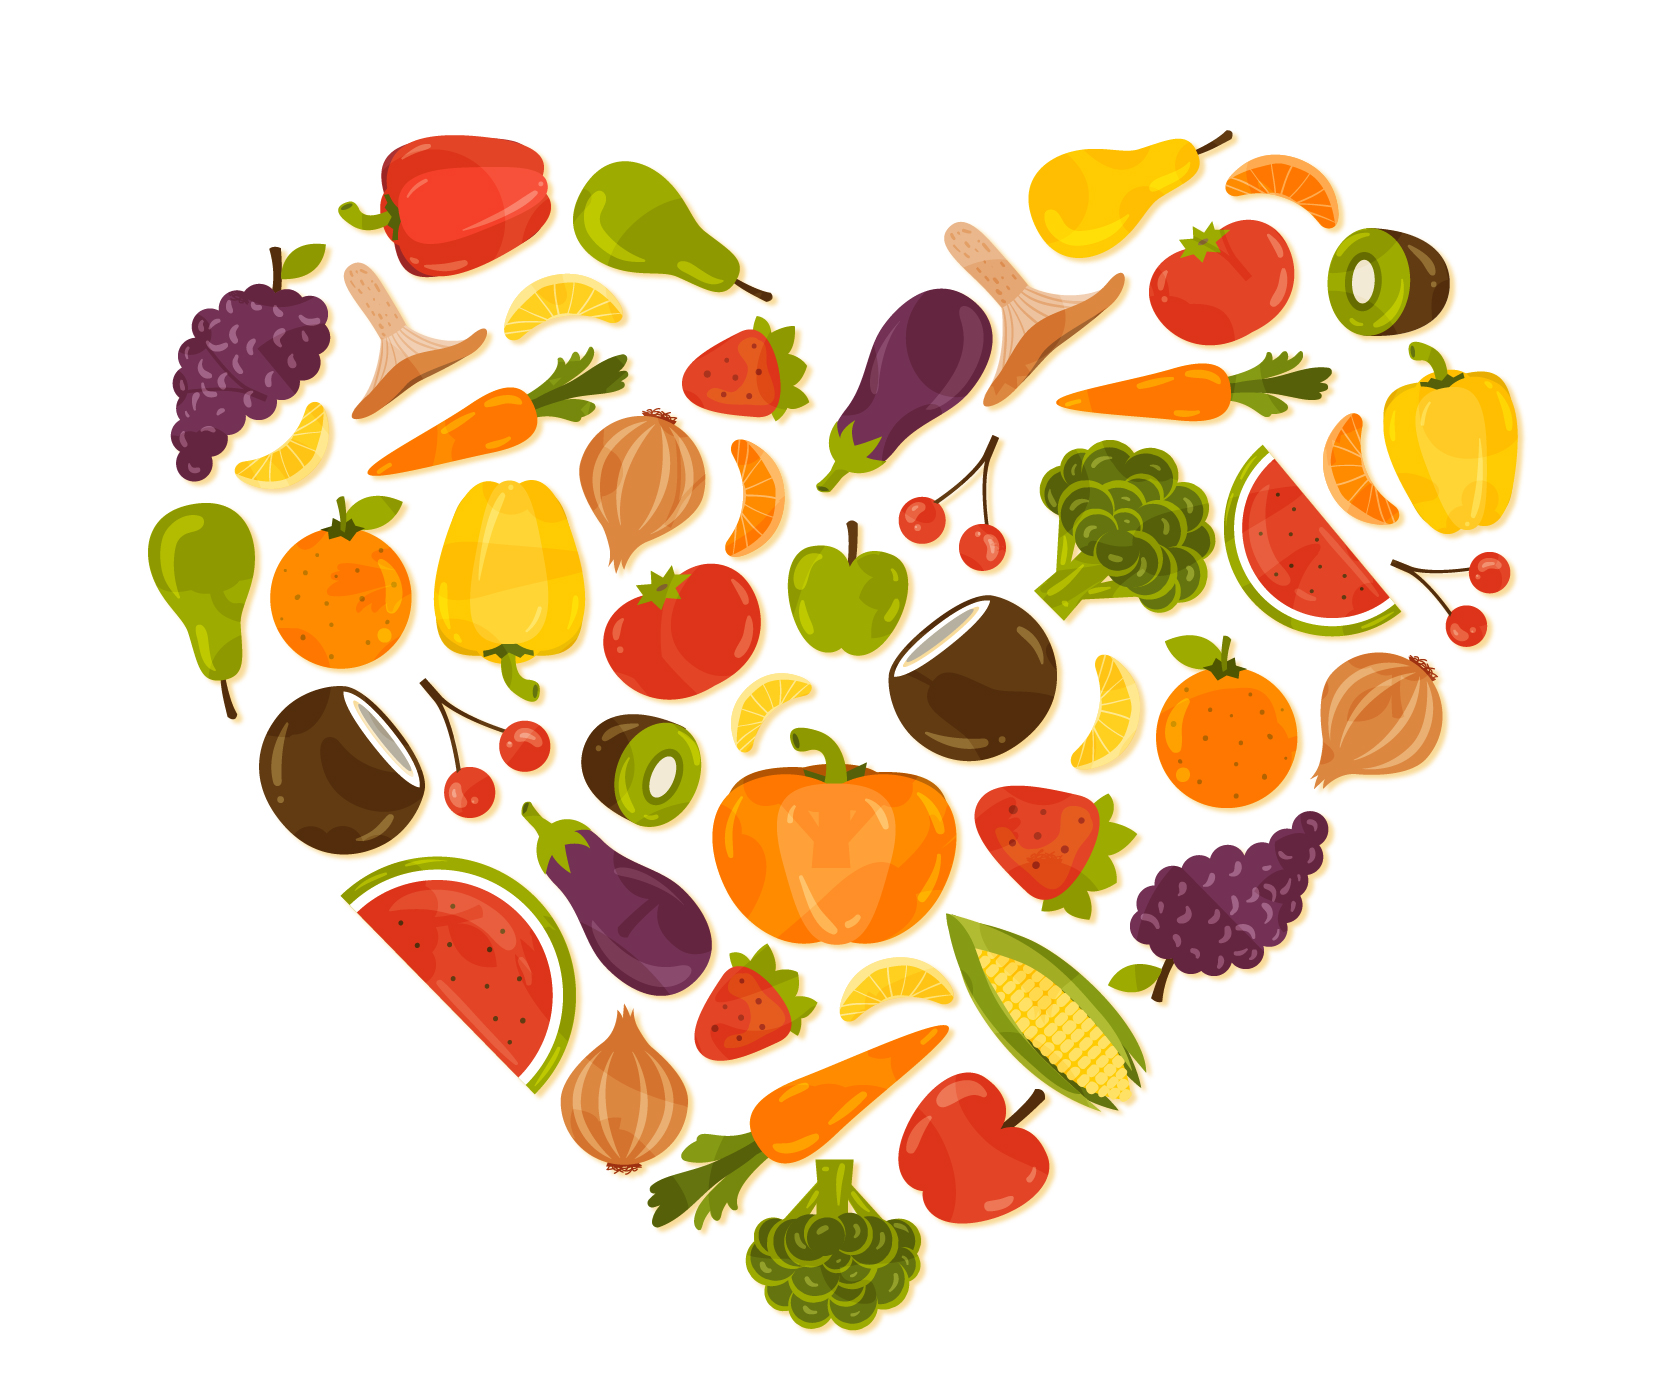 Png Vegetable Icon Free image #25355